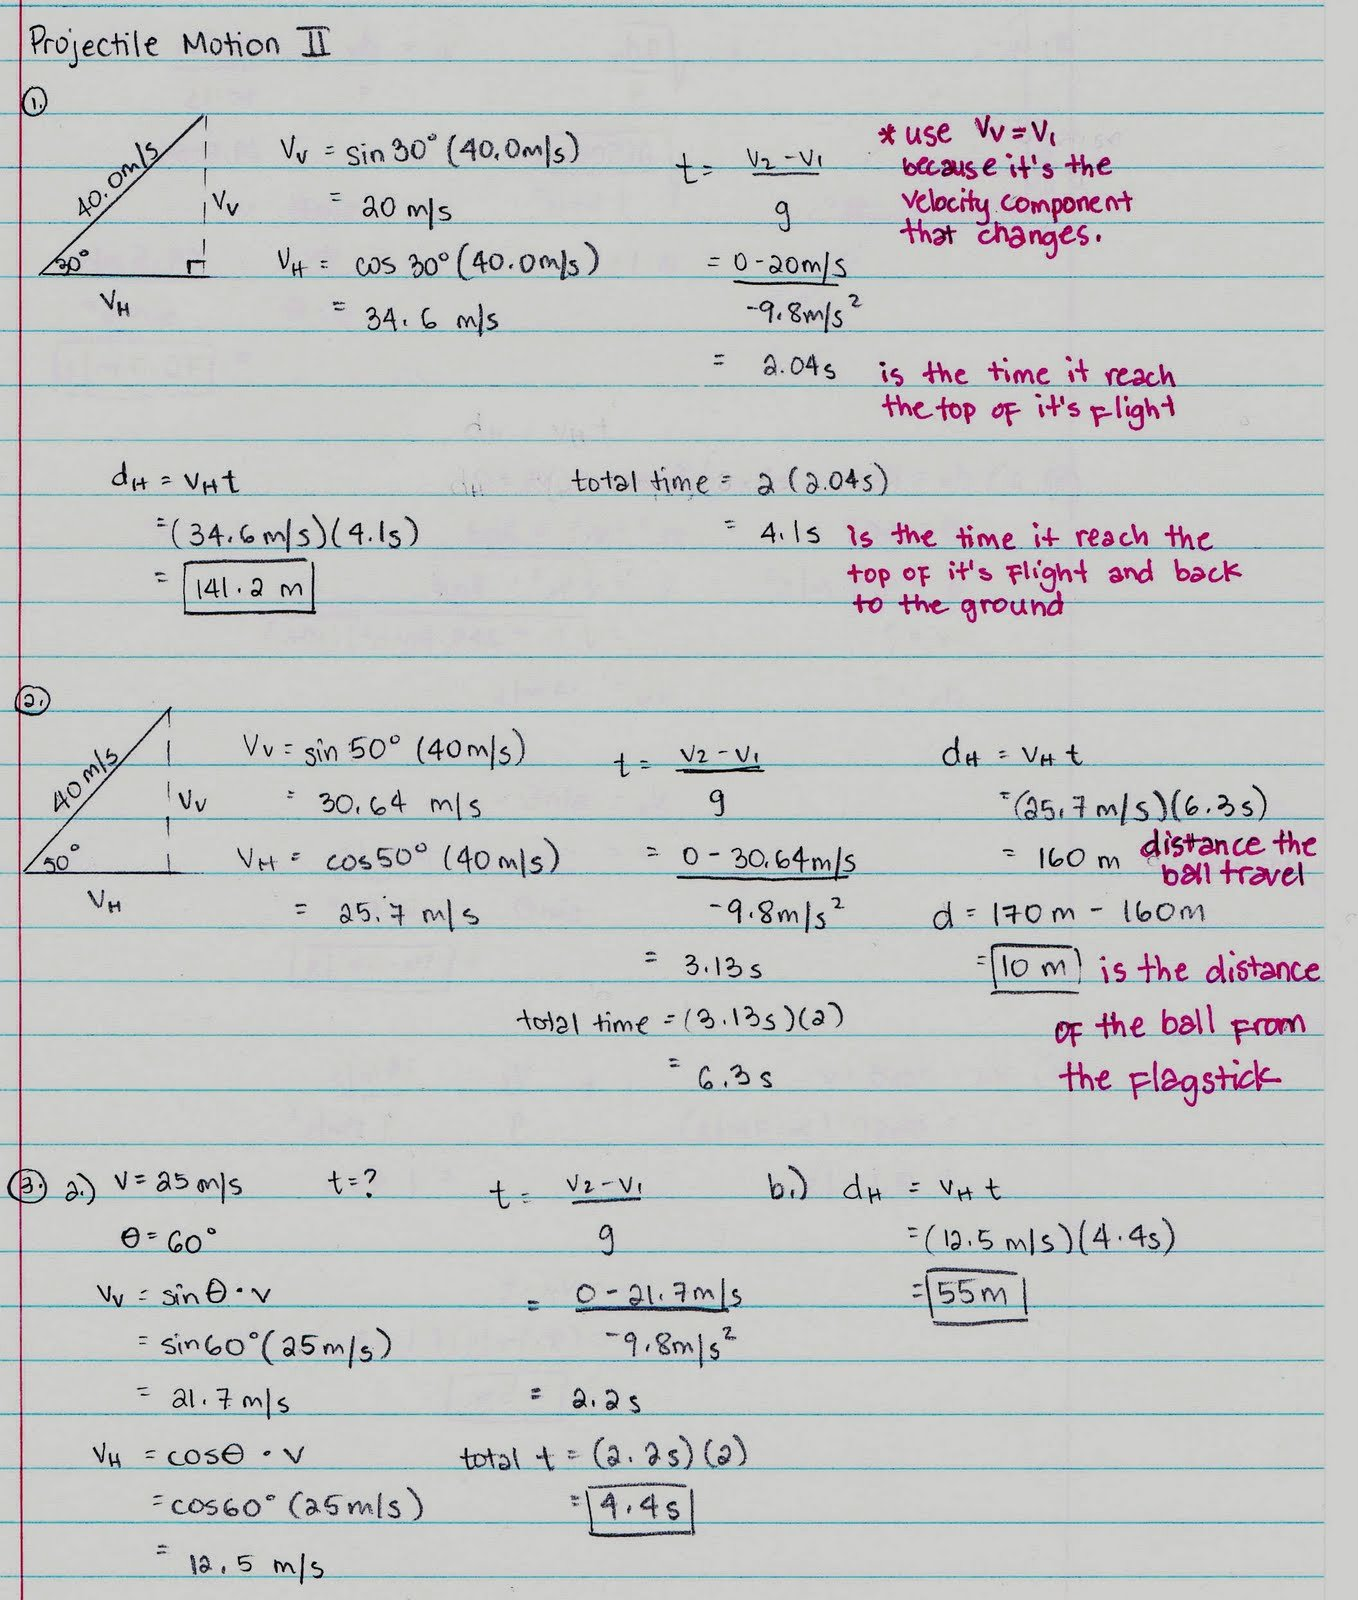 Projectile Motion Worksheet with Answers Best Of Physics1202 2010 Projectile Motion Continued